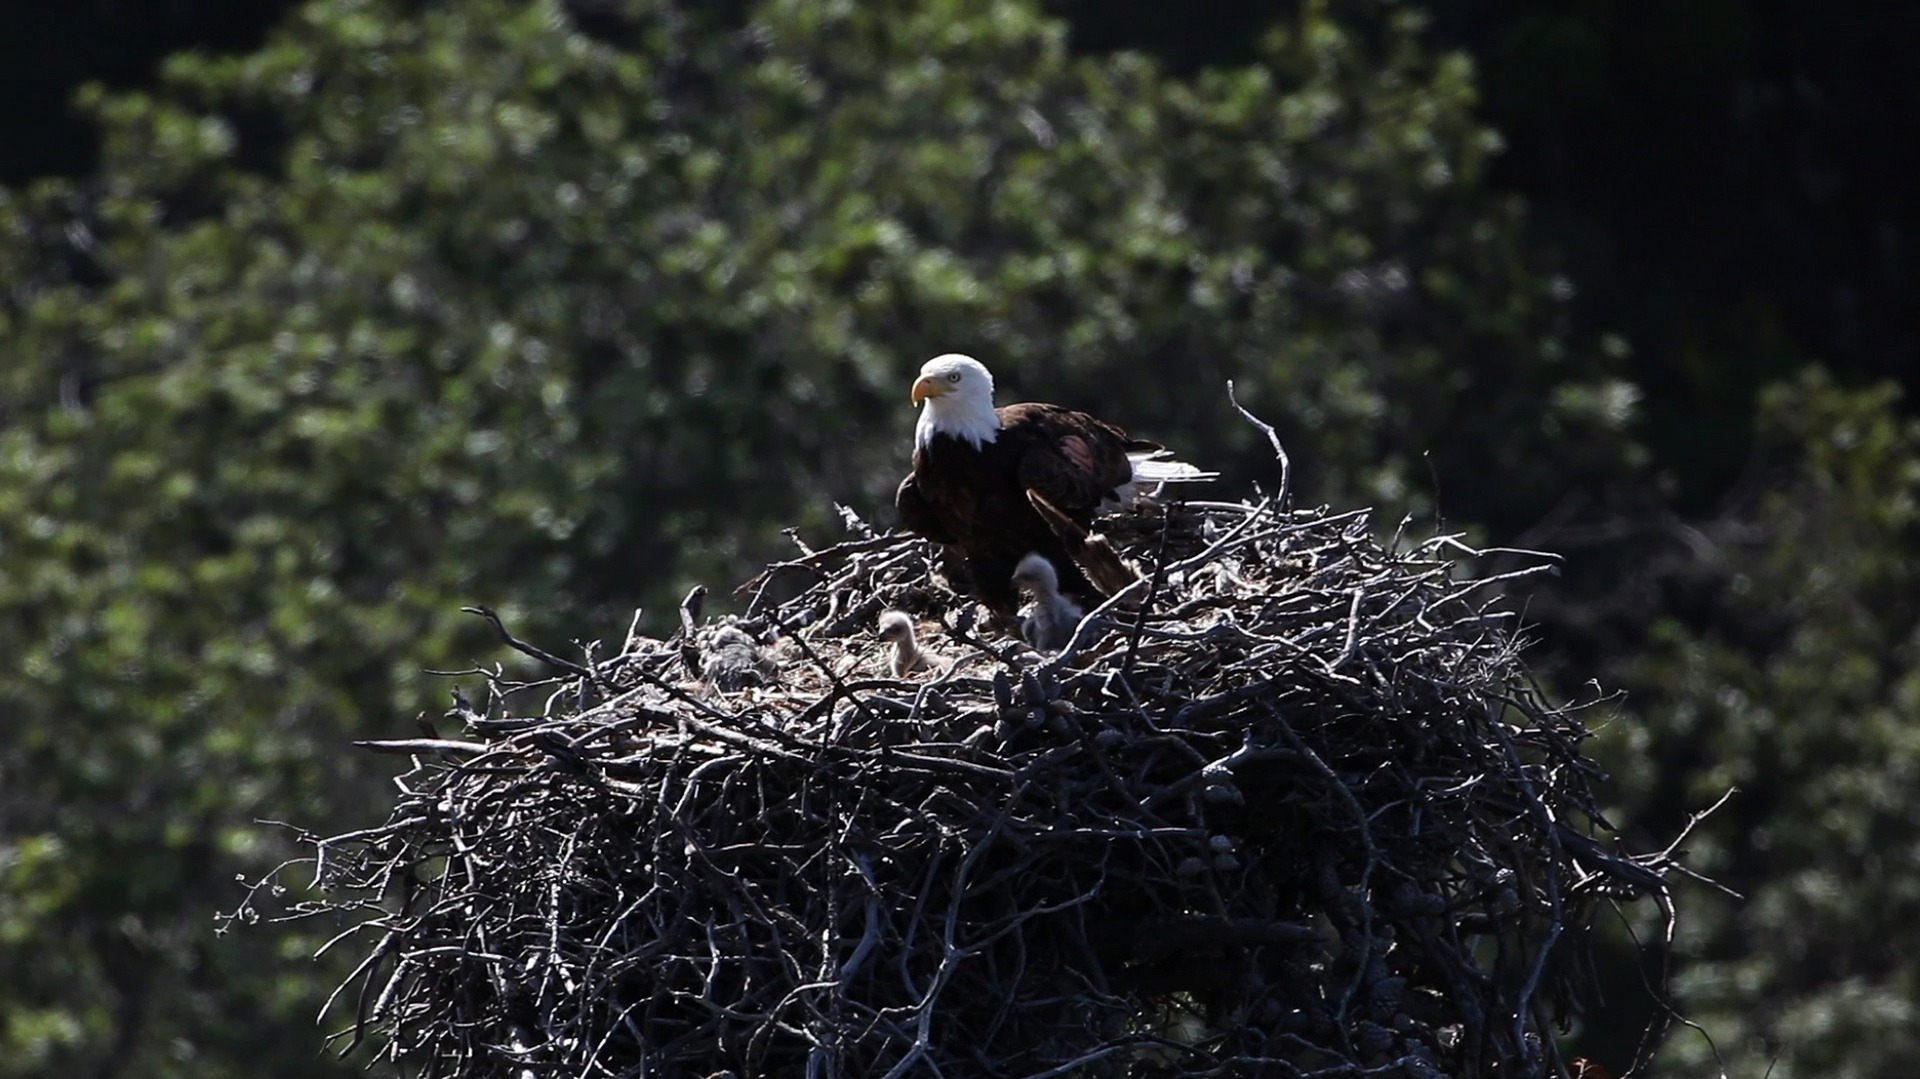 Bald eagle perched in a large nest